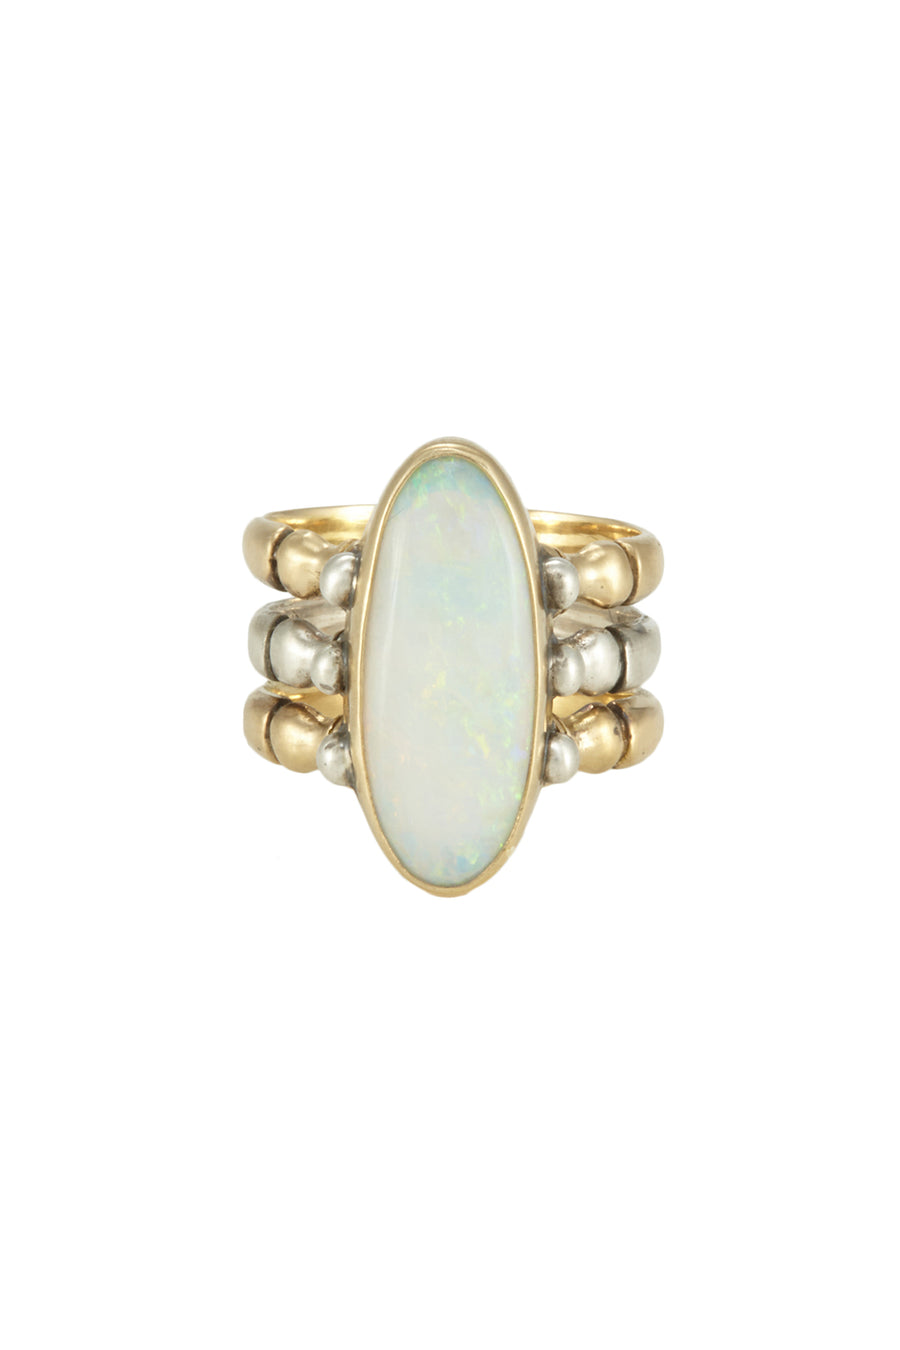 TRIAD 18kt gold fire opal RING